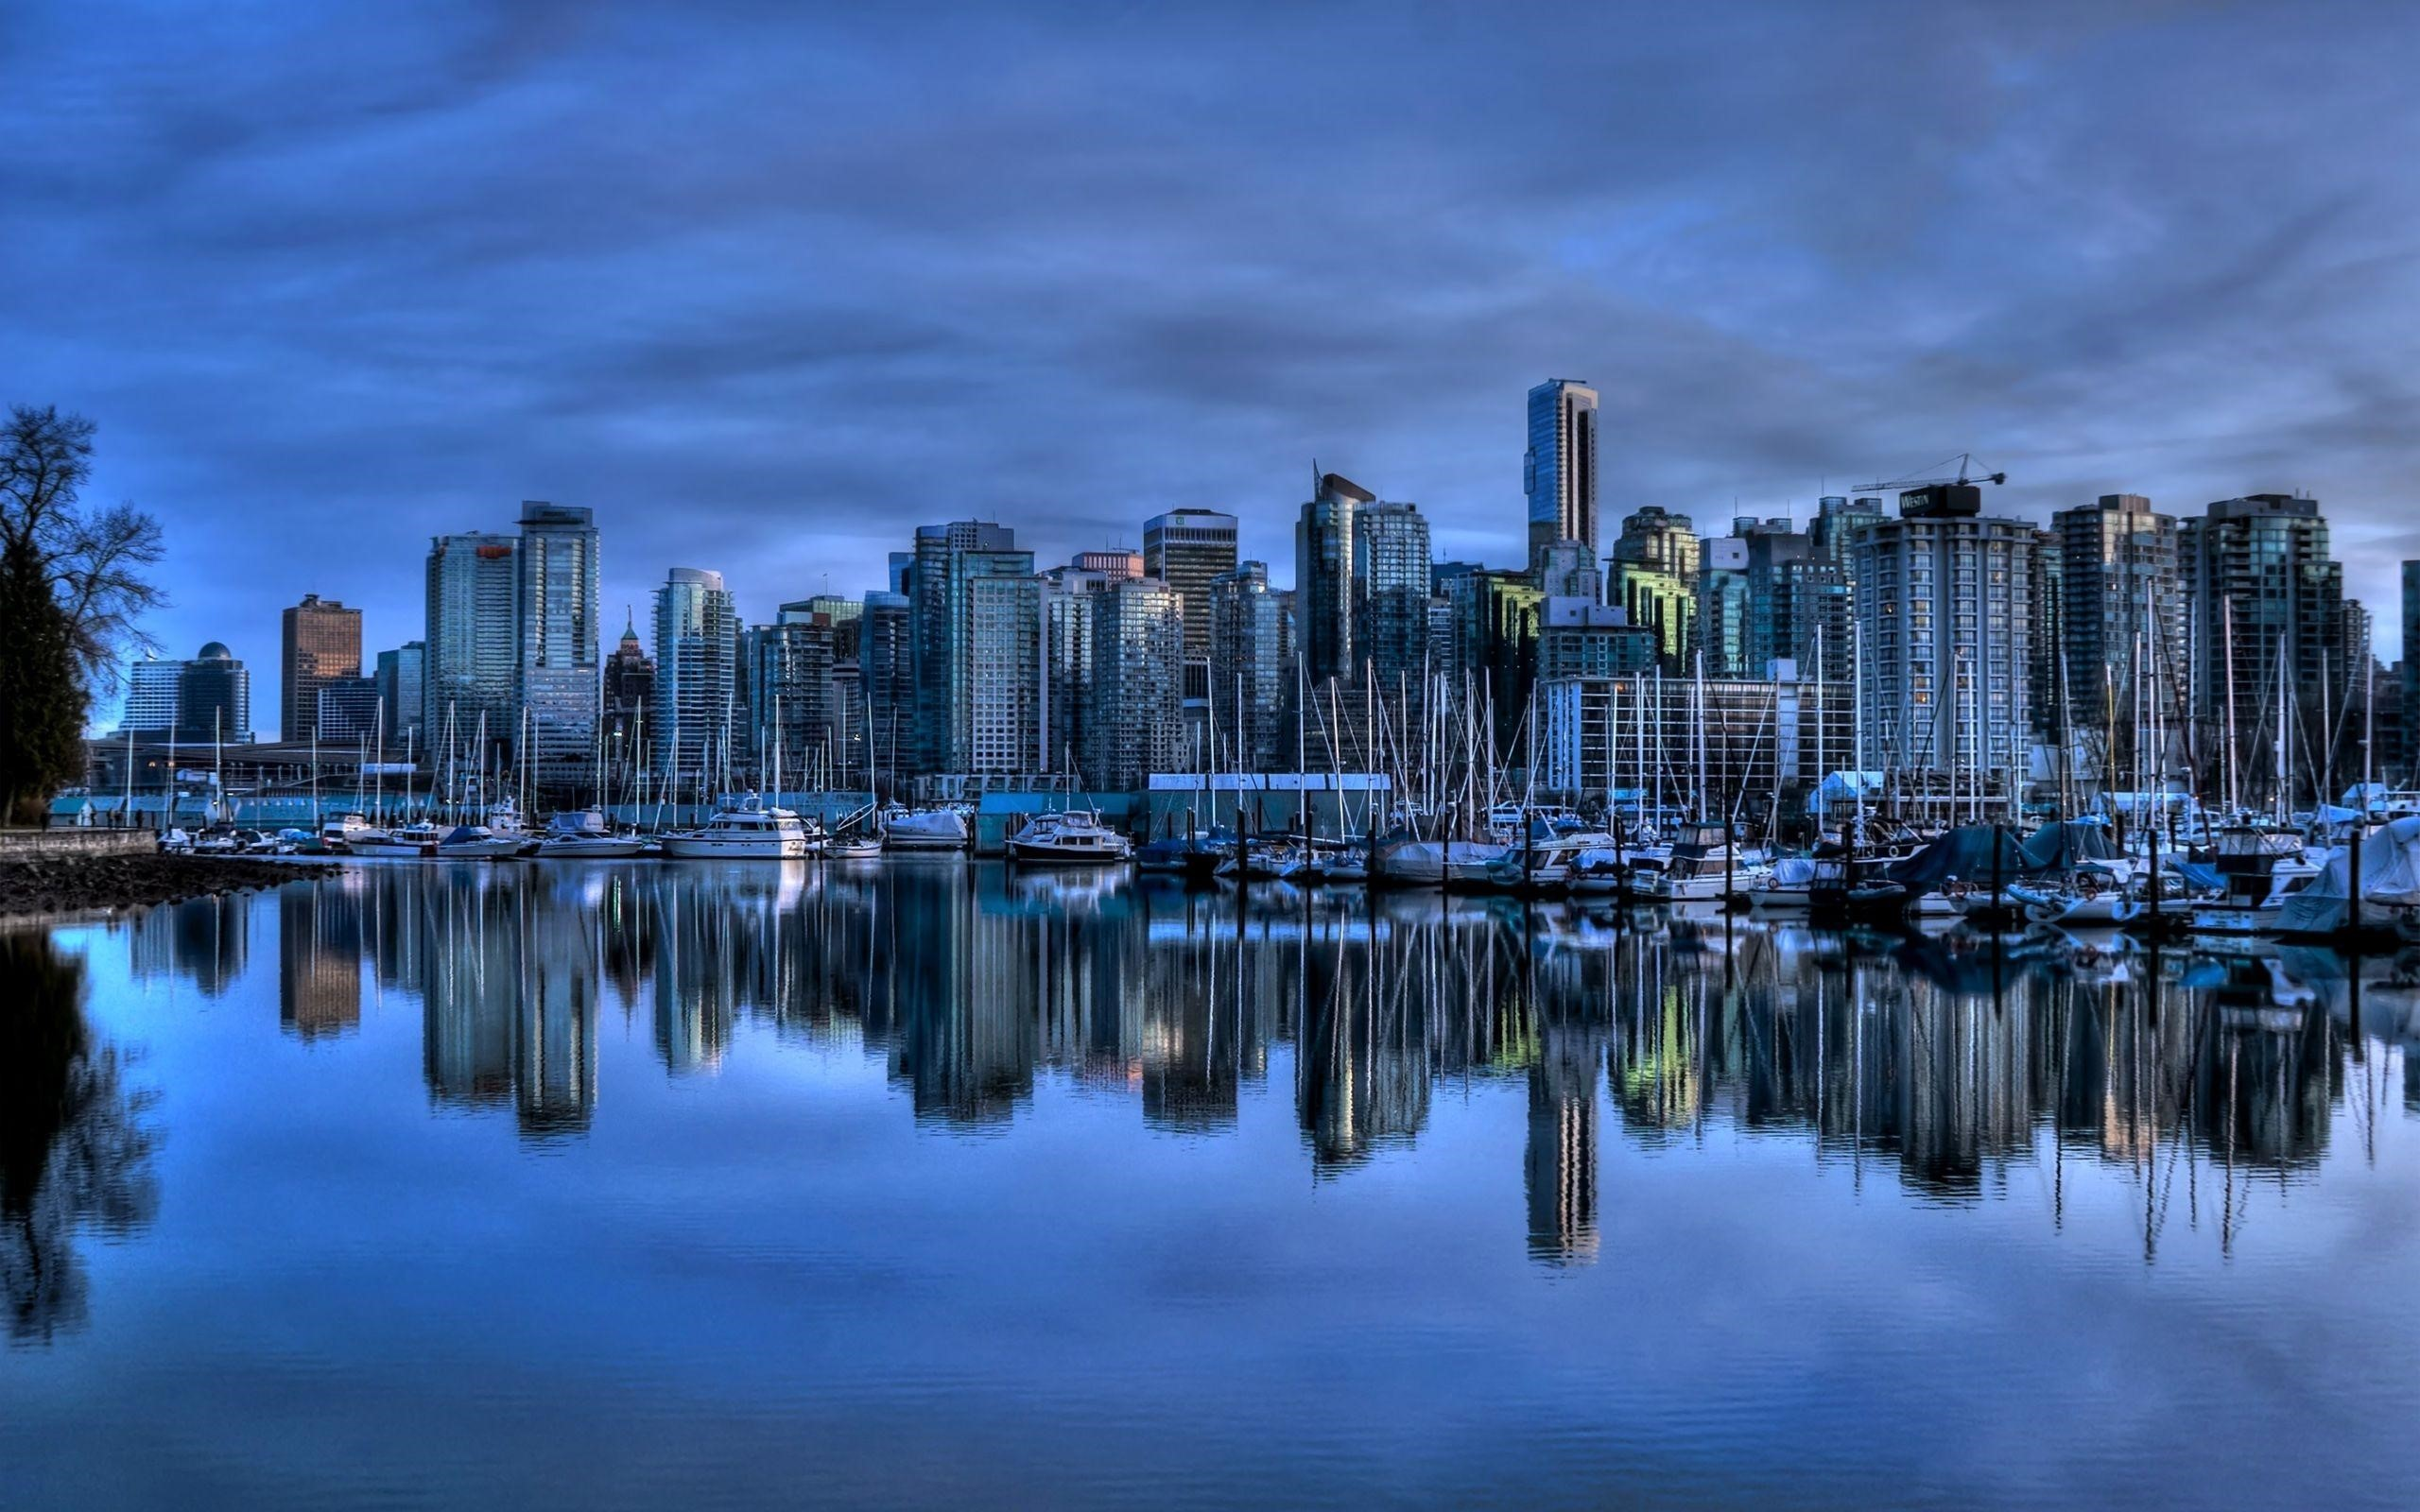 2560x1600 Vancouver, Canada, British columbia, Xxi olympic winter games wallpaper and  background